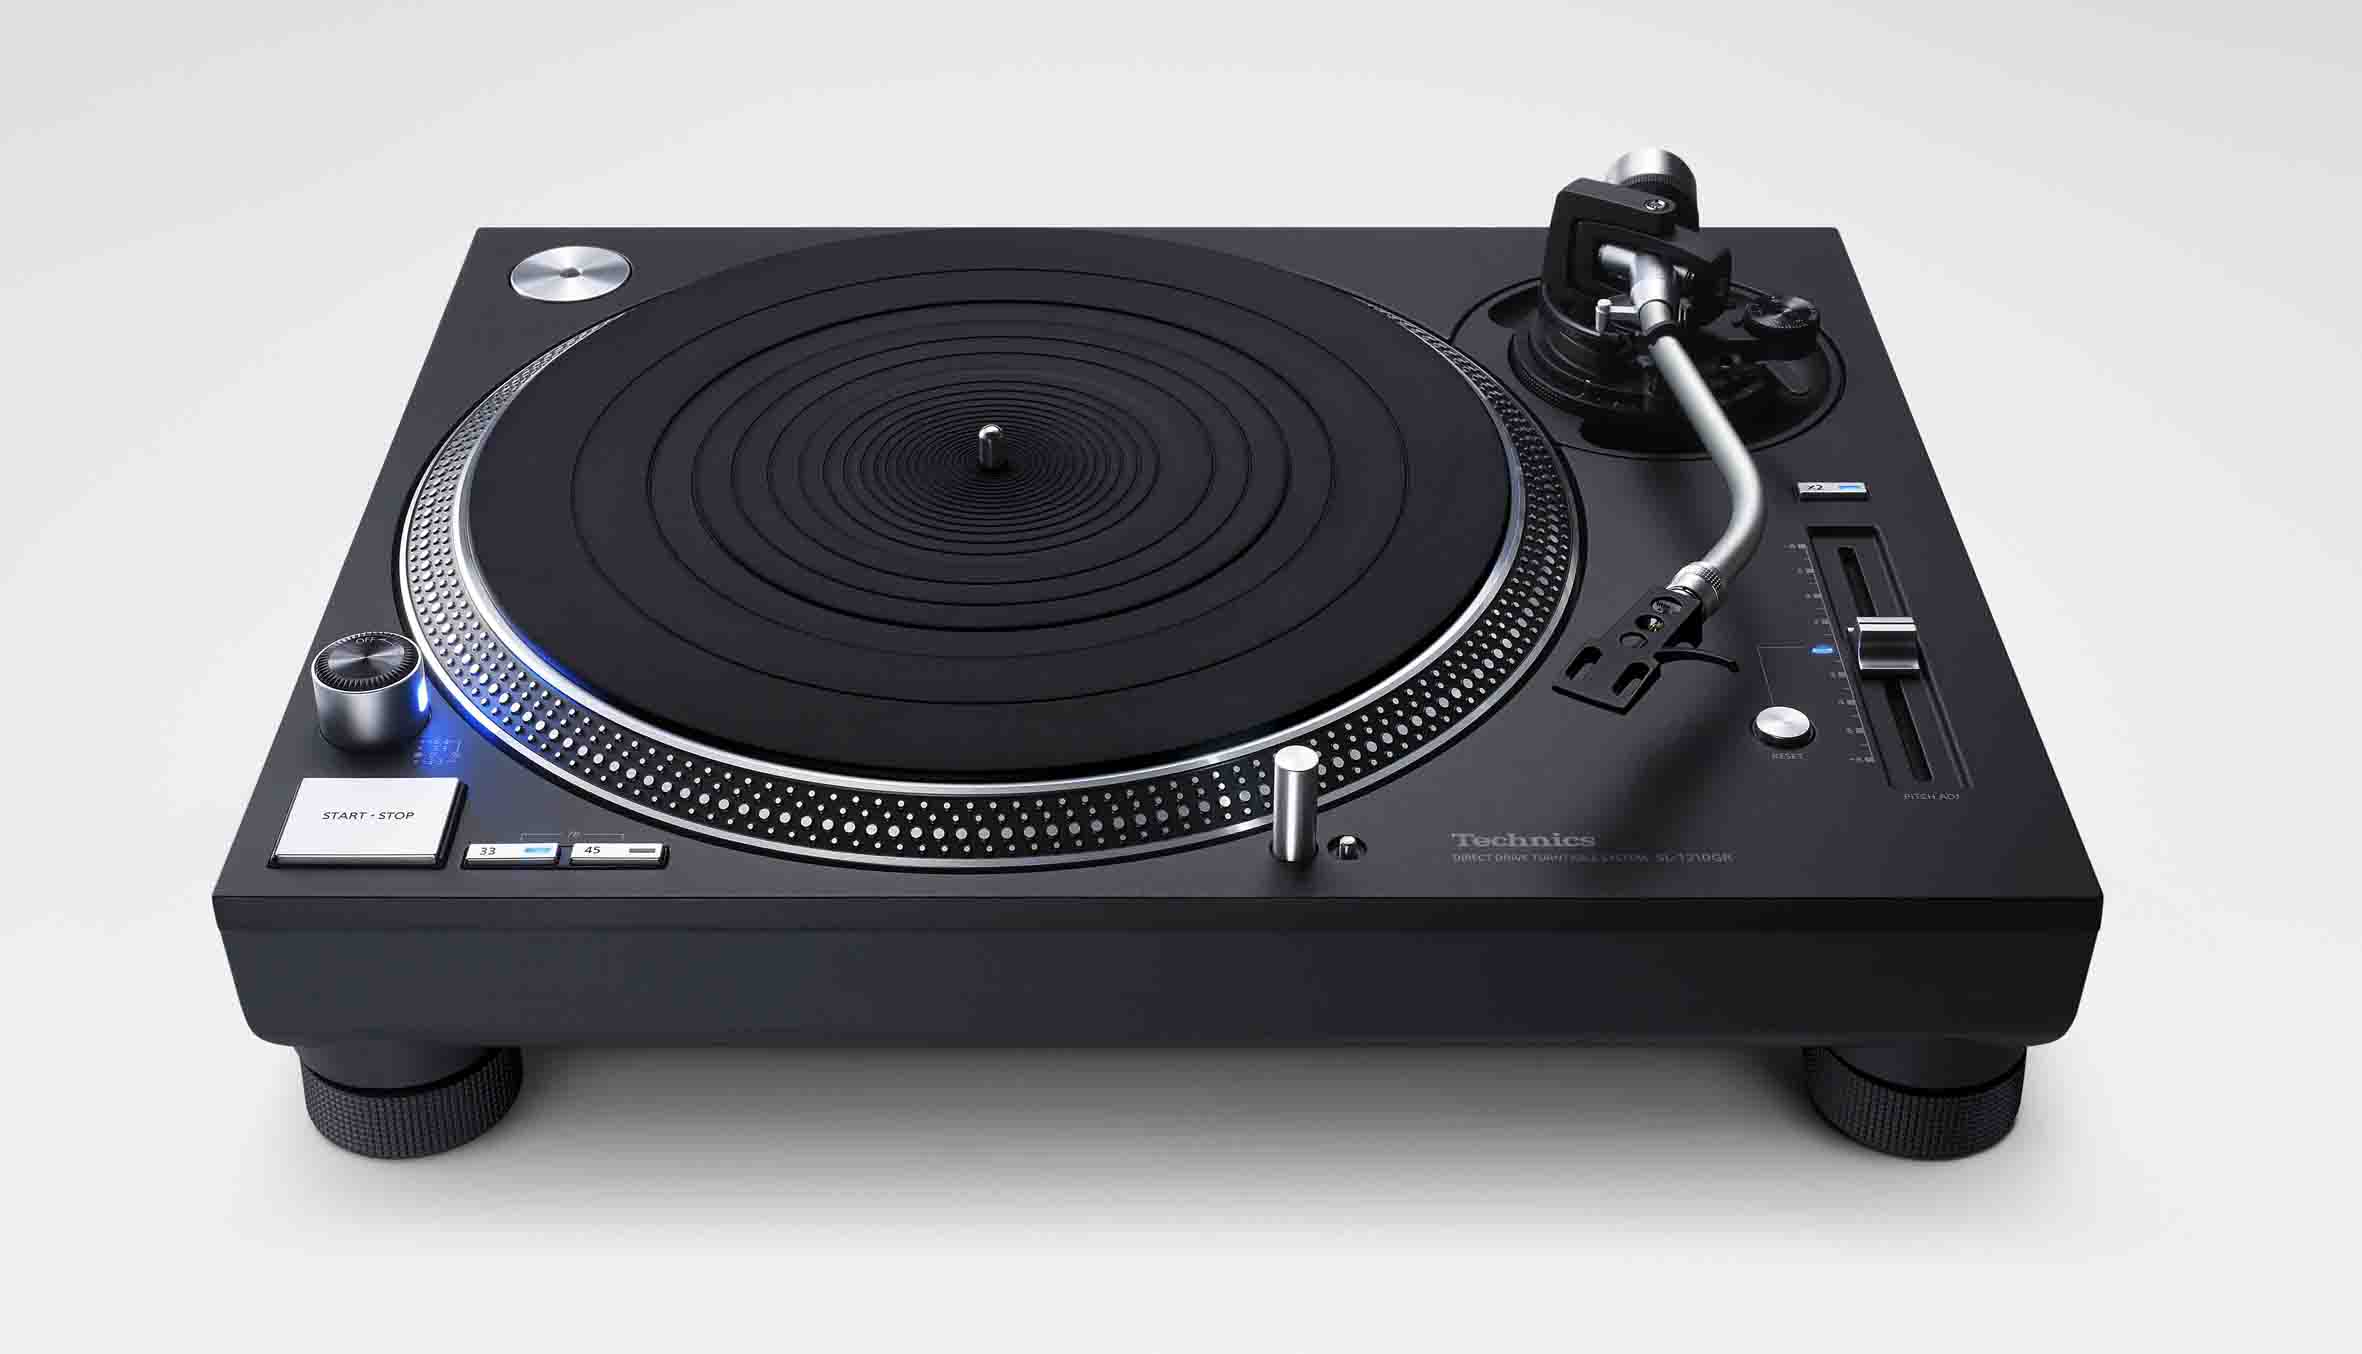 Direct-Drive-Turntable-System-SL-1210GR-3-20161219